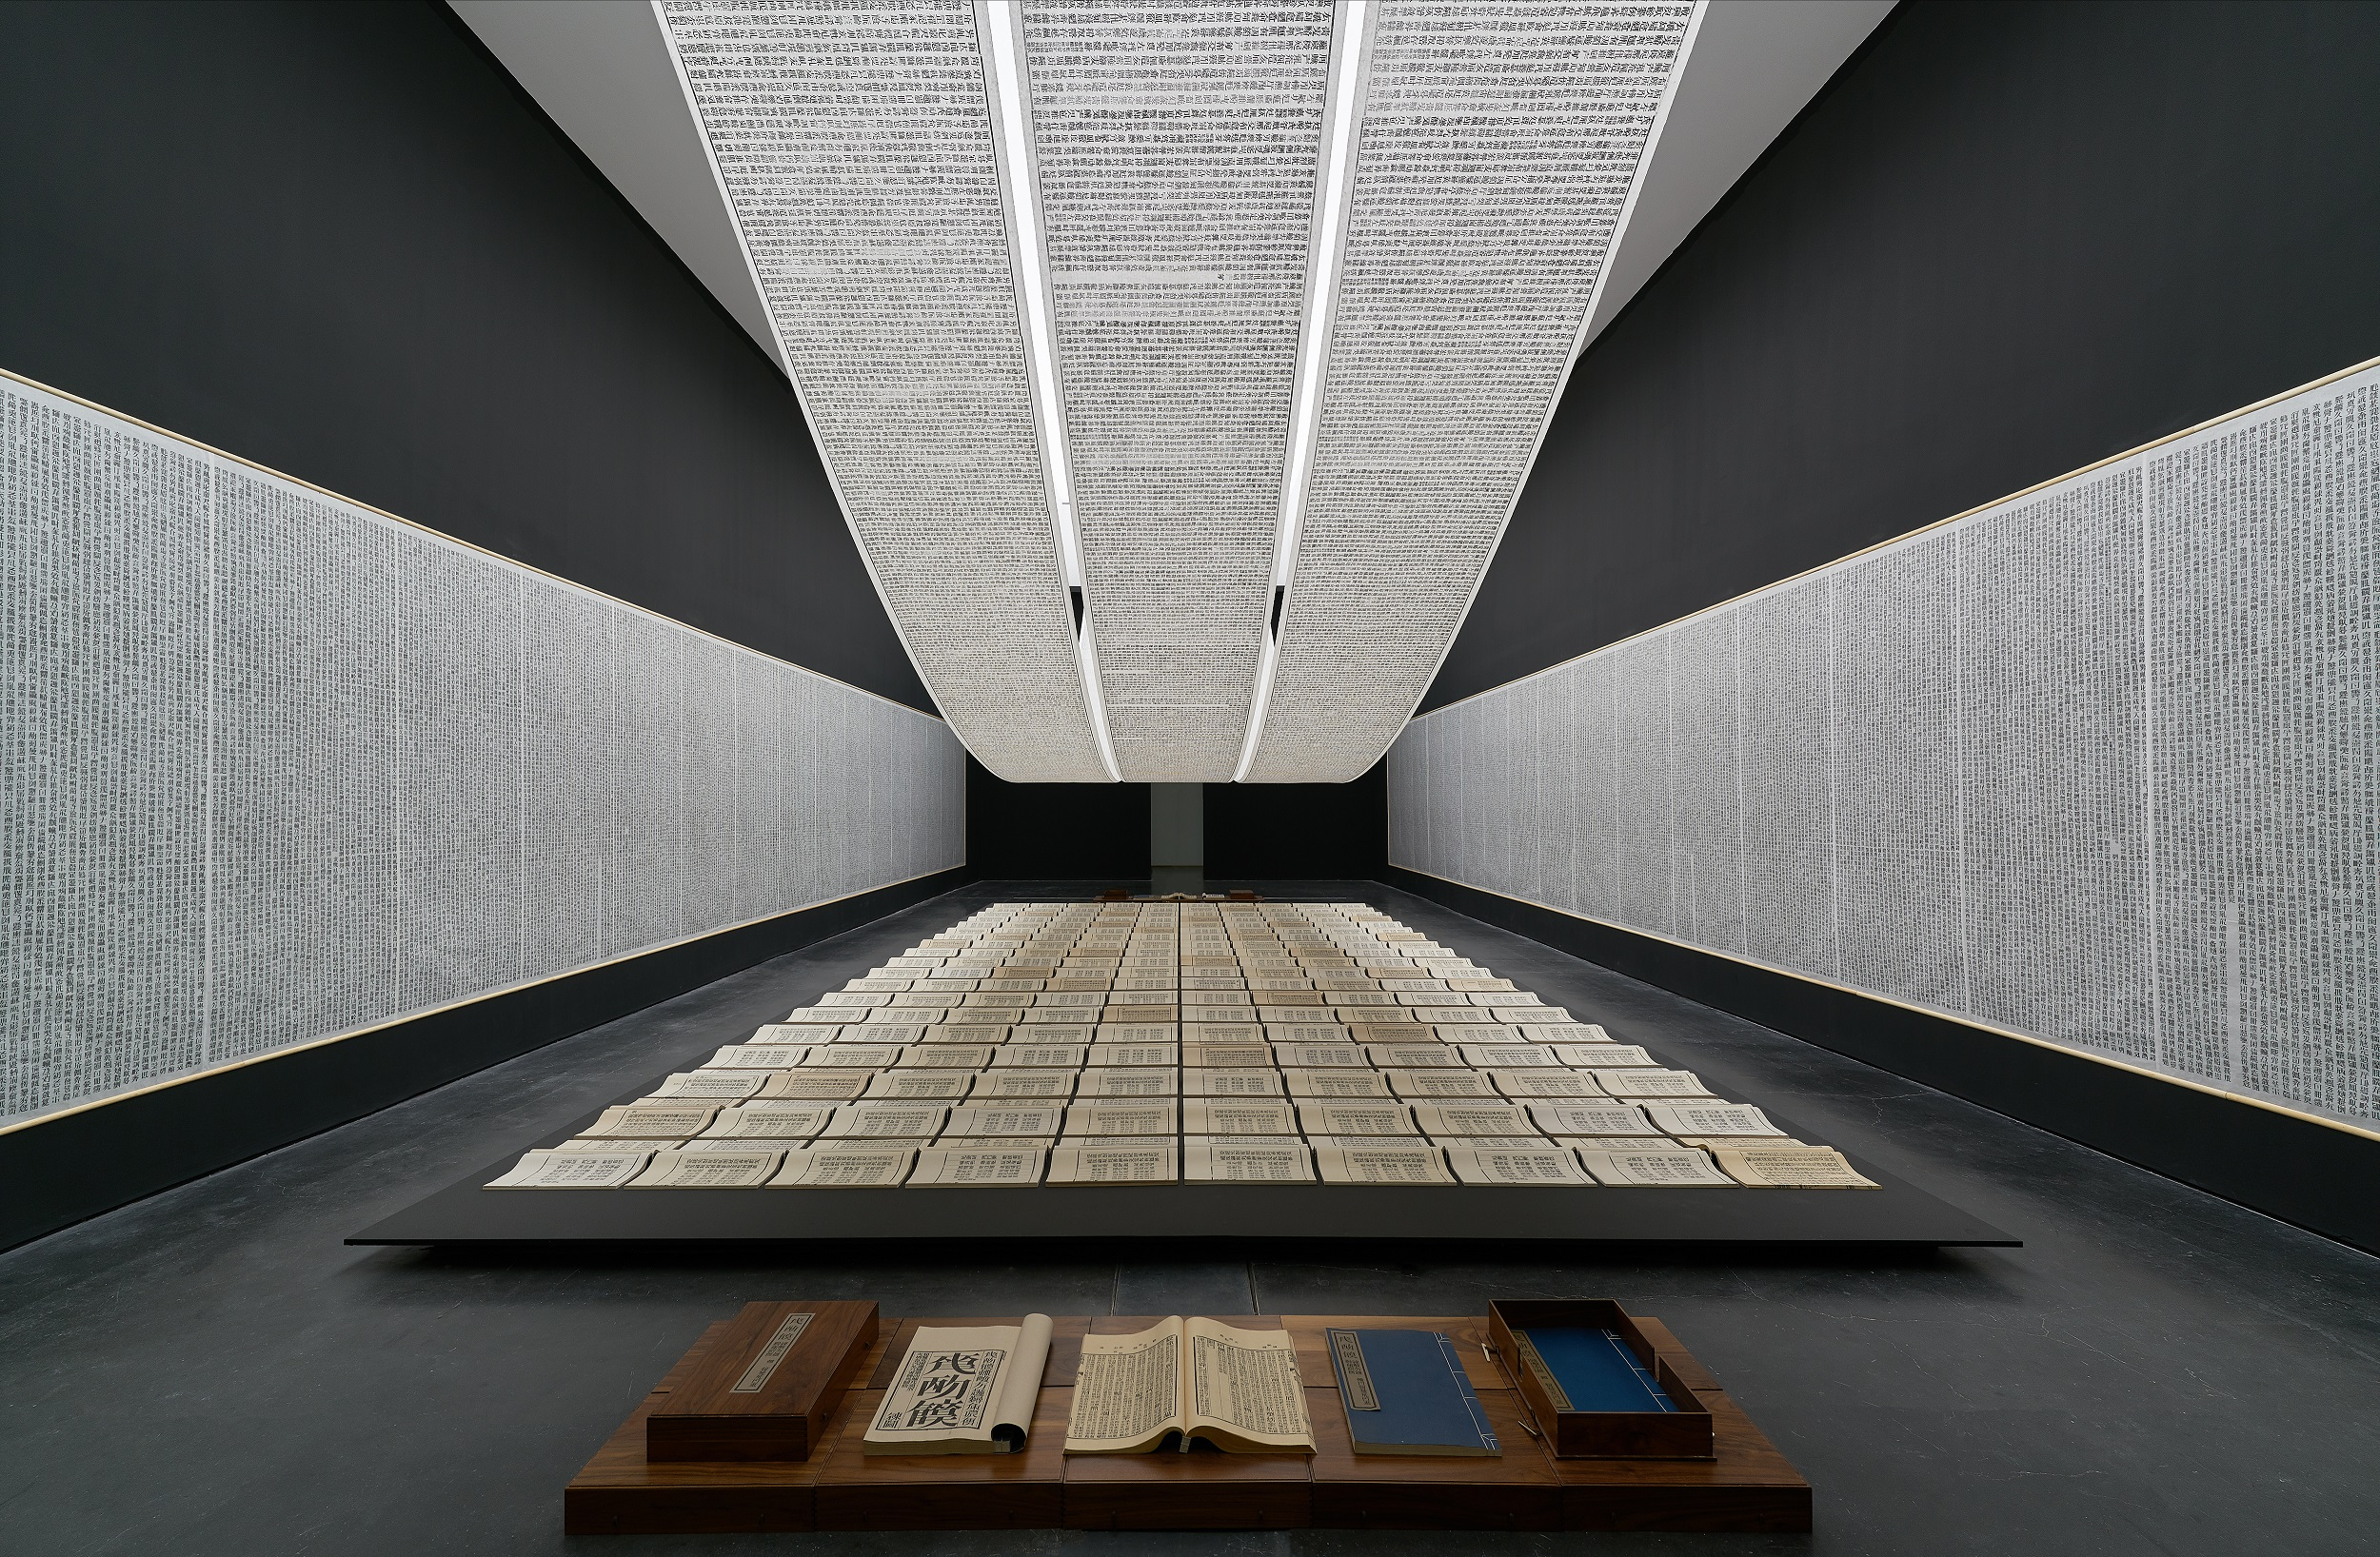 Xu Bing, 'Book from the Sky', installation view of 'Xu Bing: Thought and Method', UCCA, Beijing, 2018. Image courtesy of UCCA.